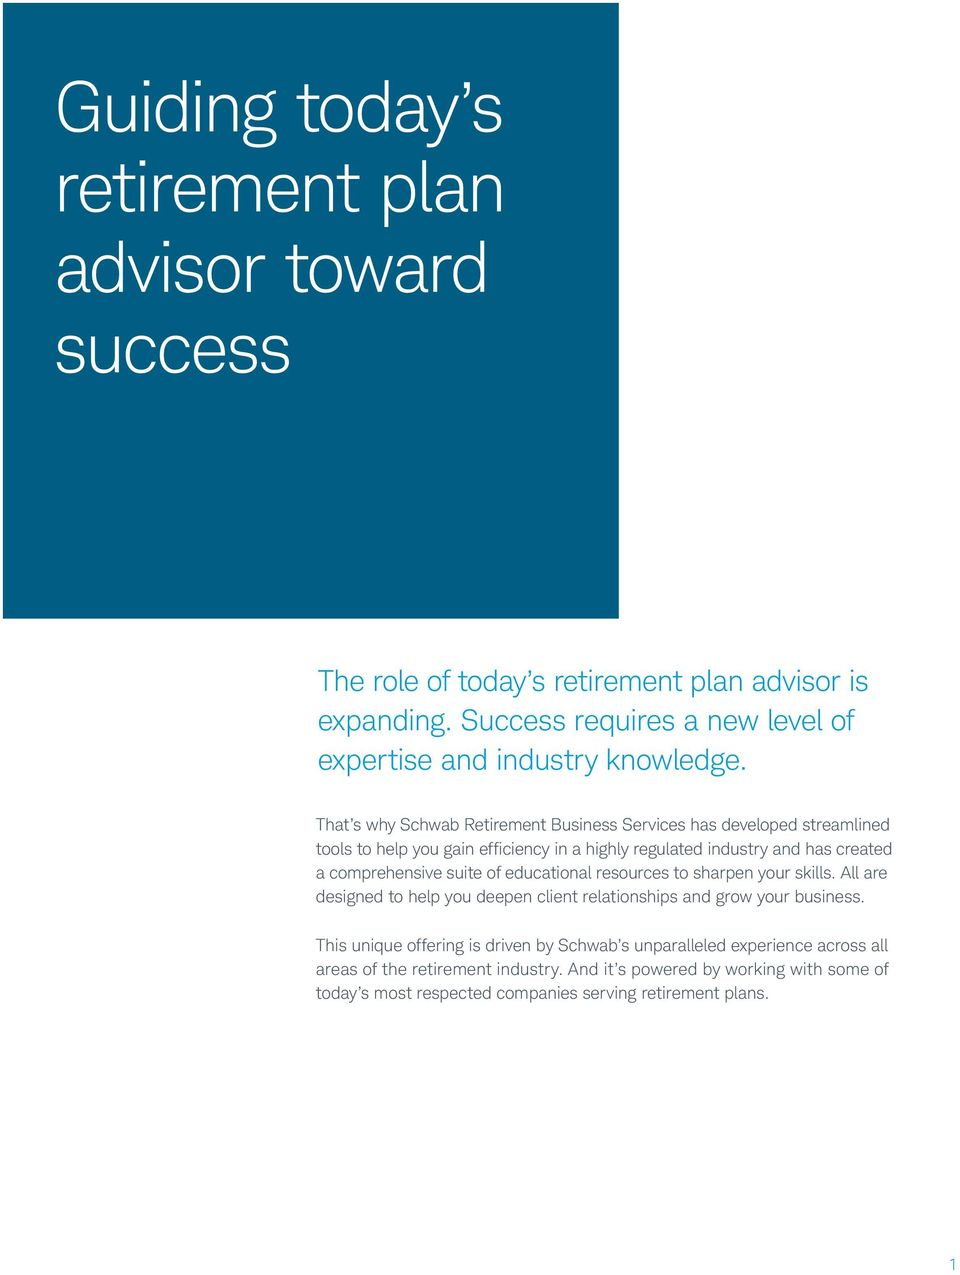 That s why Schwab Retirement Business Services has developed streamlined tools to help you gain efficiency in a highly regulated industry and has created a comprehensive